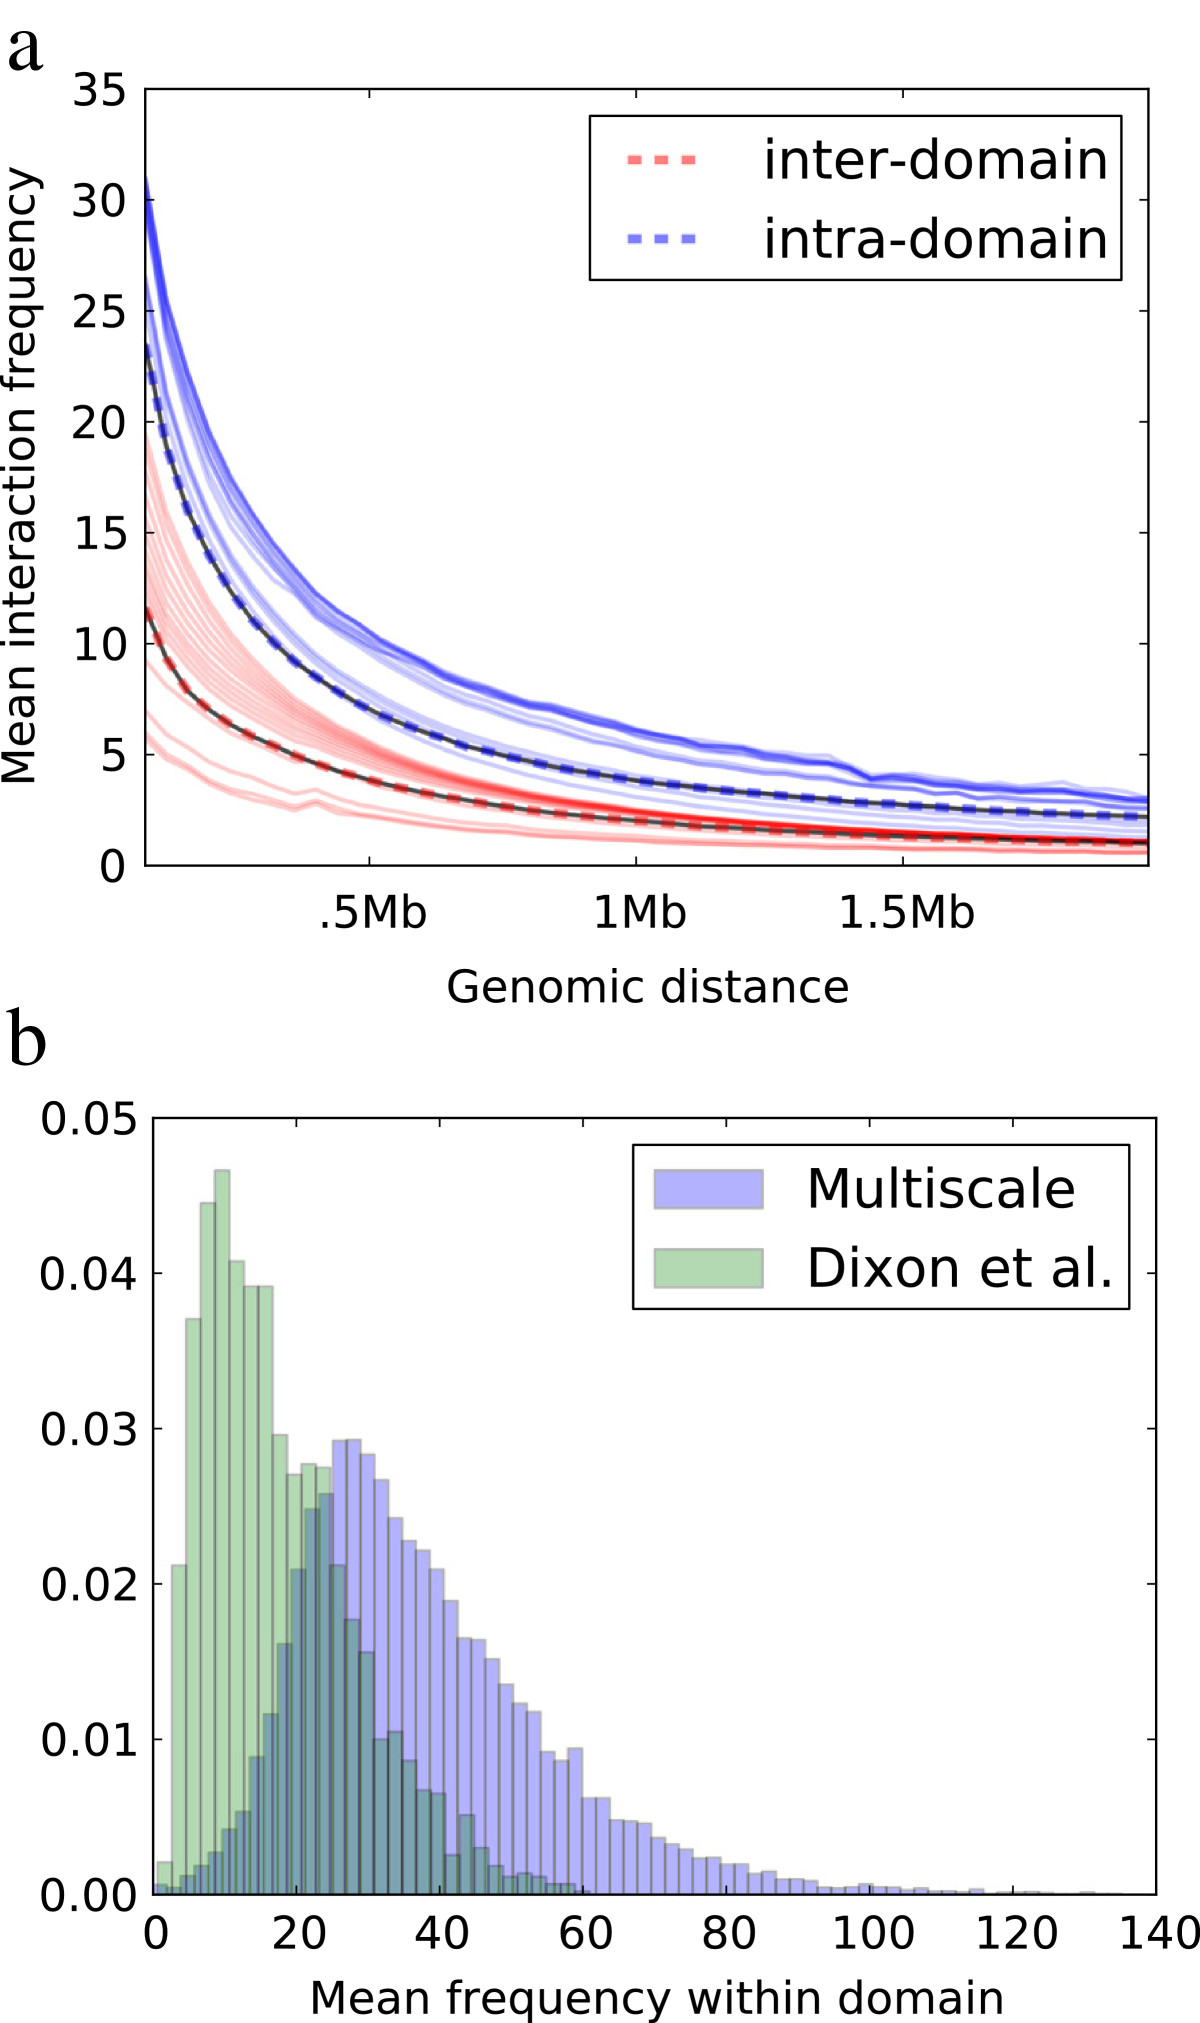 http://static-content.springer.com/image/art%3A10.1186%2F1748-7188-9-14/MediaObjects/13015_2013_Article_214_Fig2_HTML.jpg